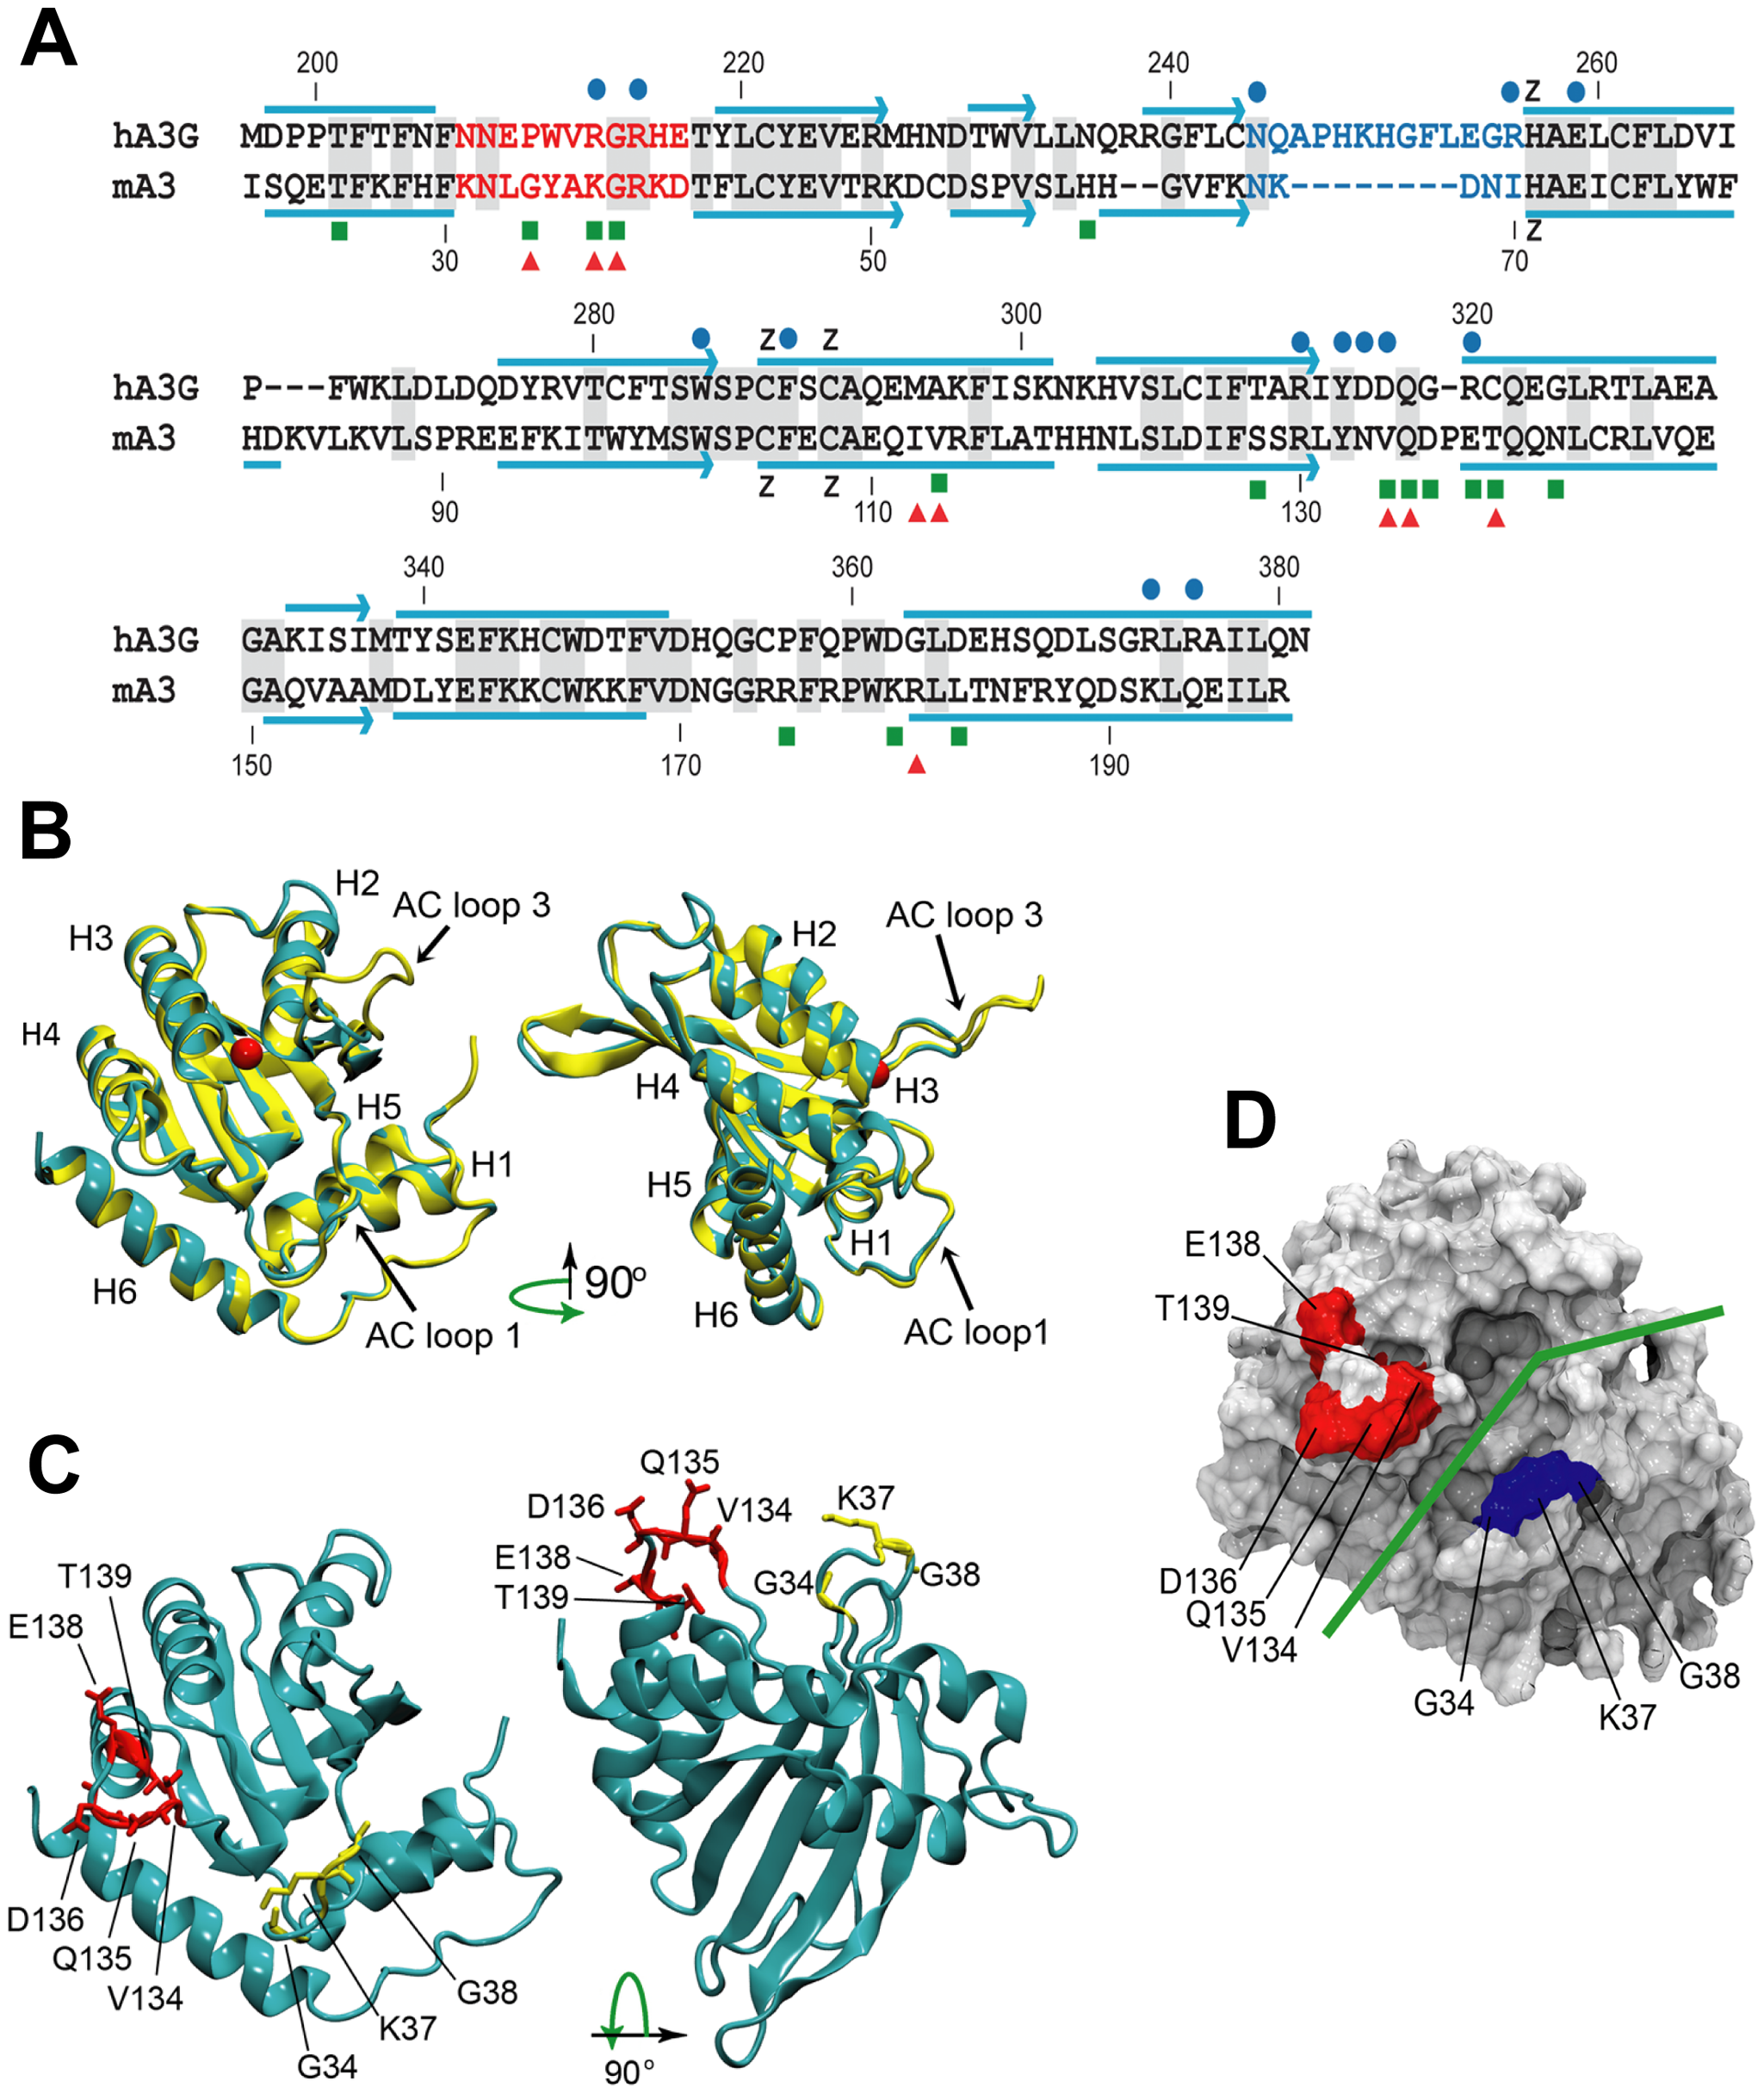 Comparative sequence and structure of the active cytidine deaminase regions of hA3G and mA3.